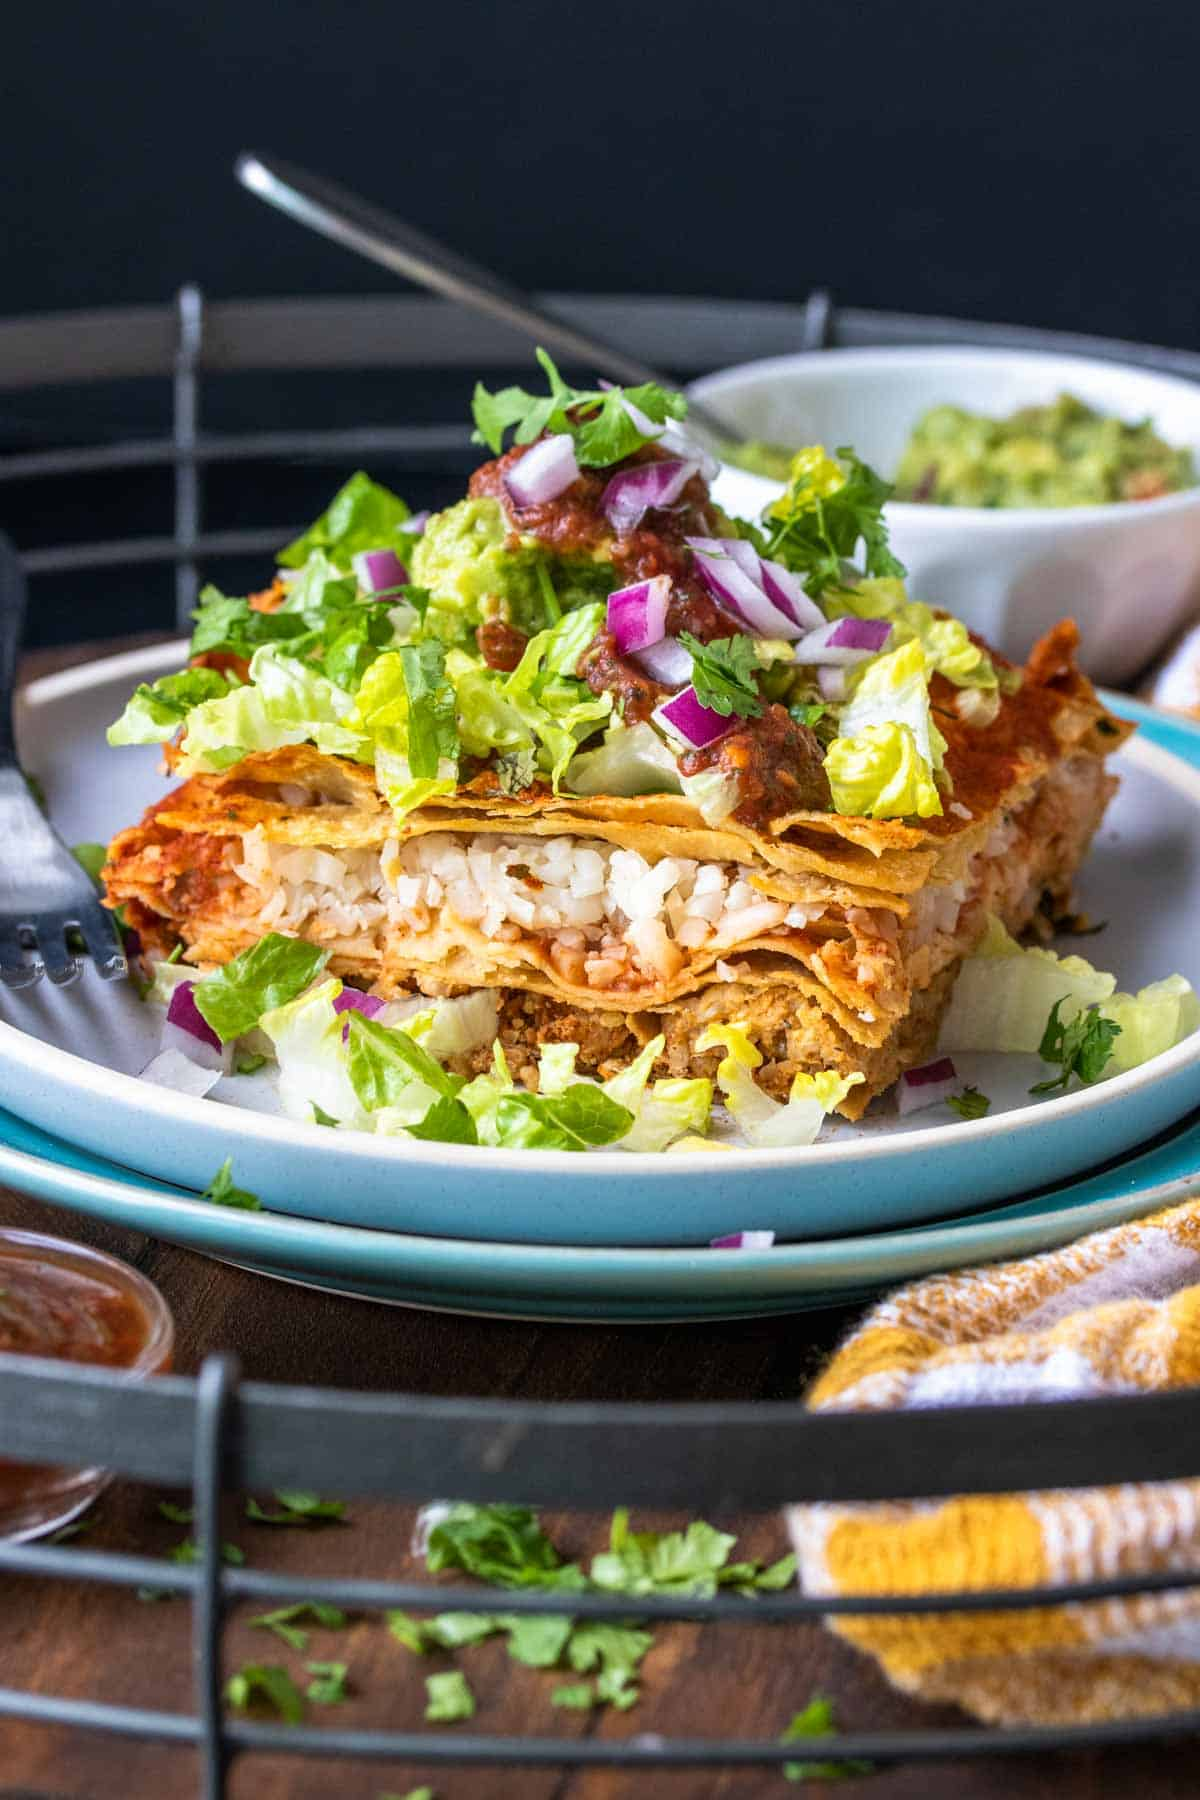 Piece of enchilada casserole topped with lettuce and red onions on a white plate